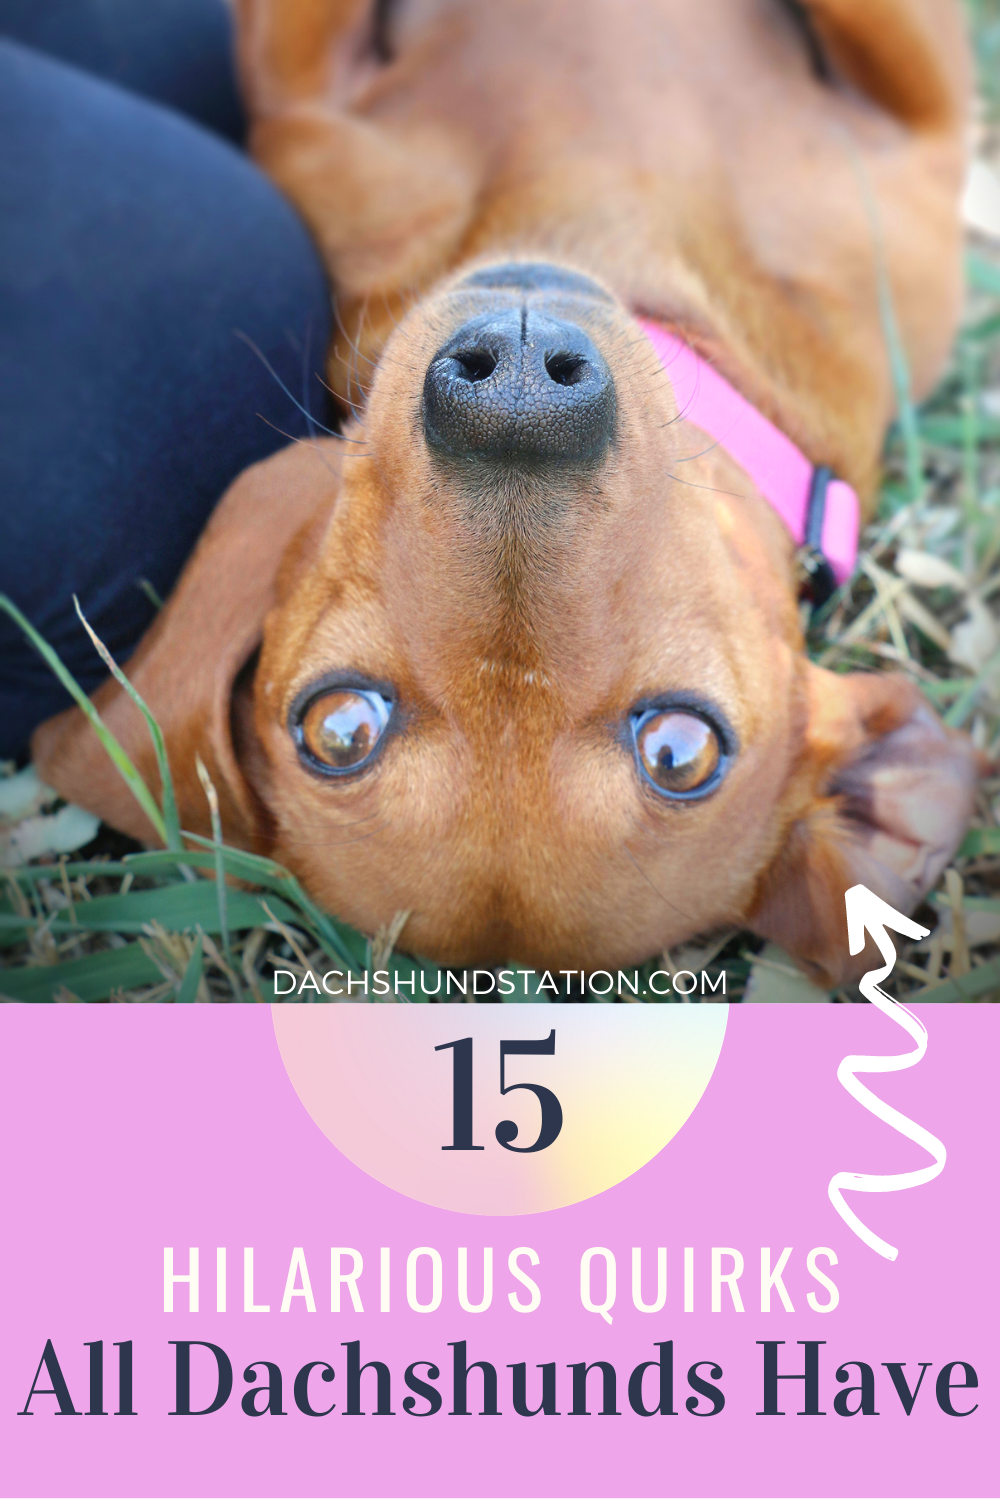 15 Hilarious Things Only Dachshund Owners Understand Dachshund Station In 2020 Puppy Dog Pictures Dachshund Dachshund Training